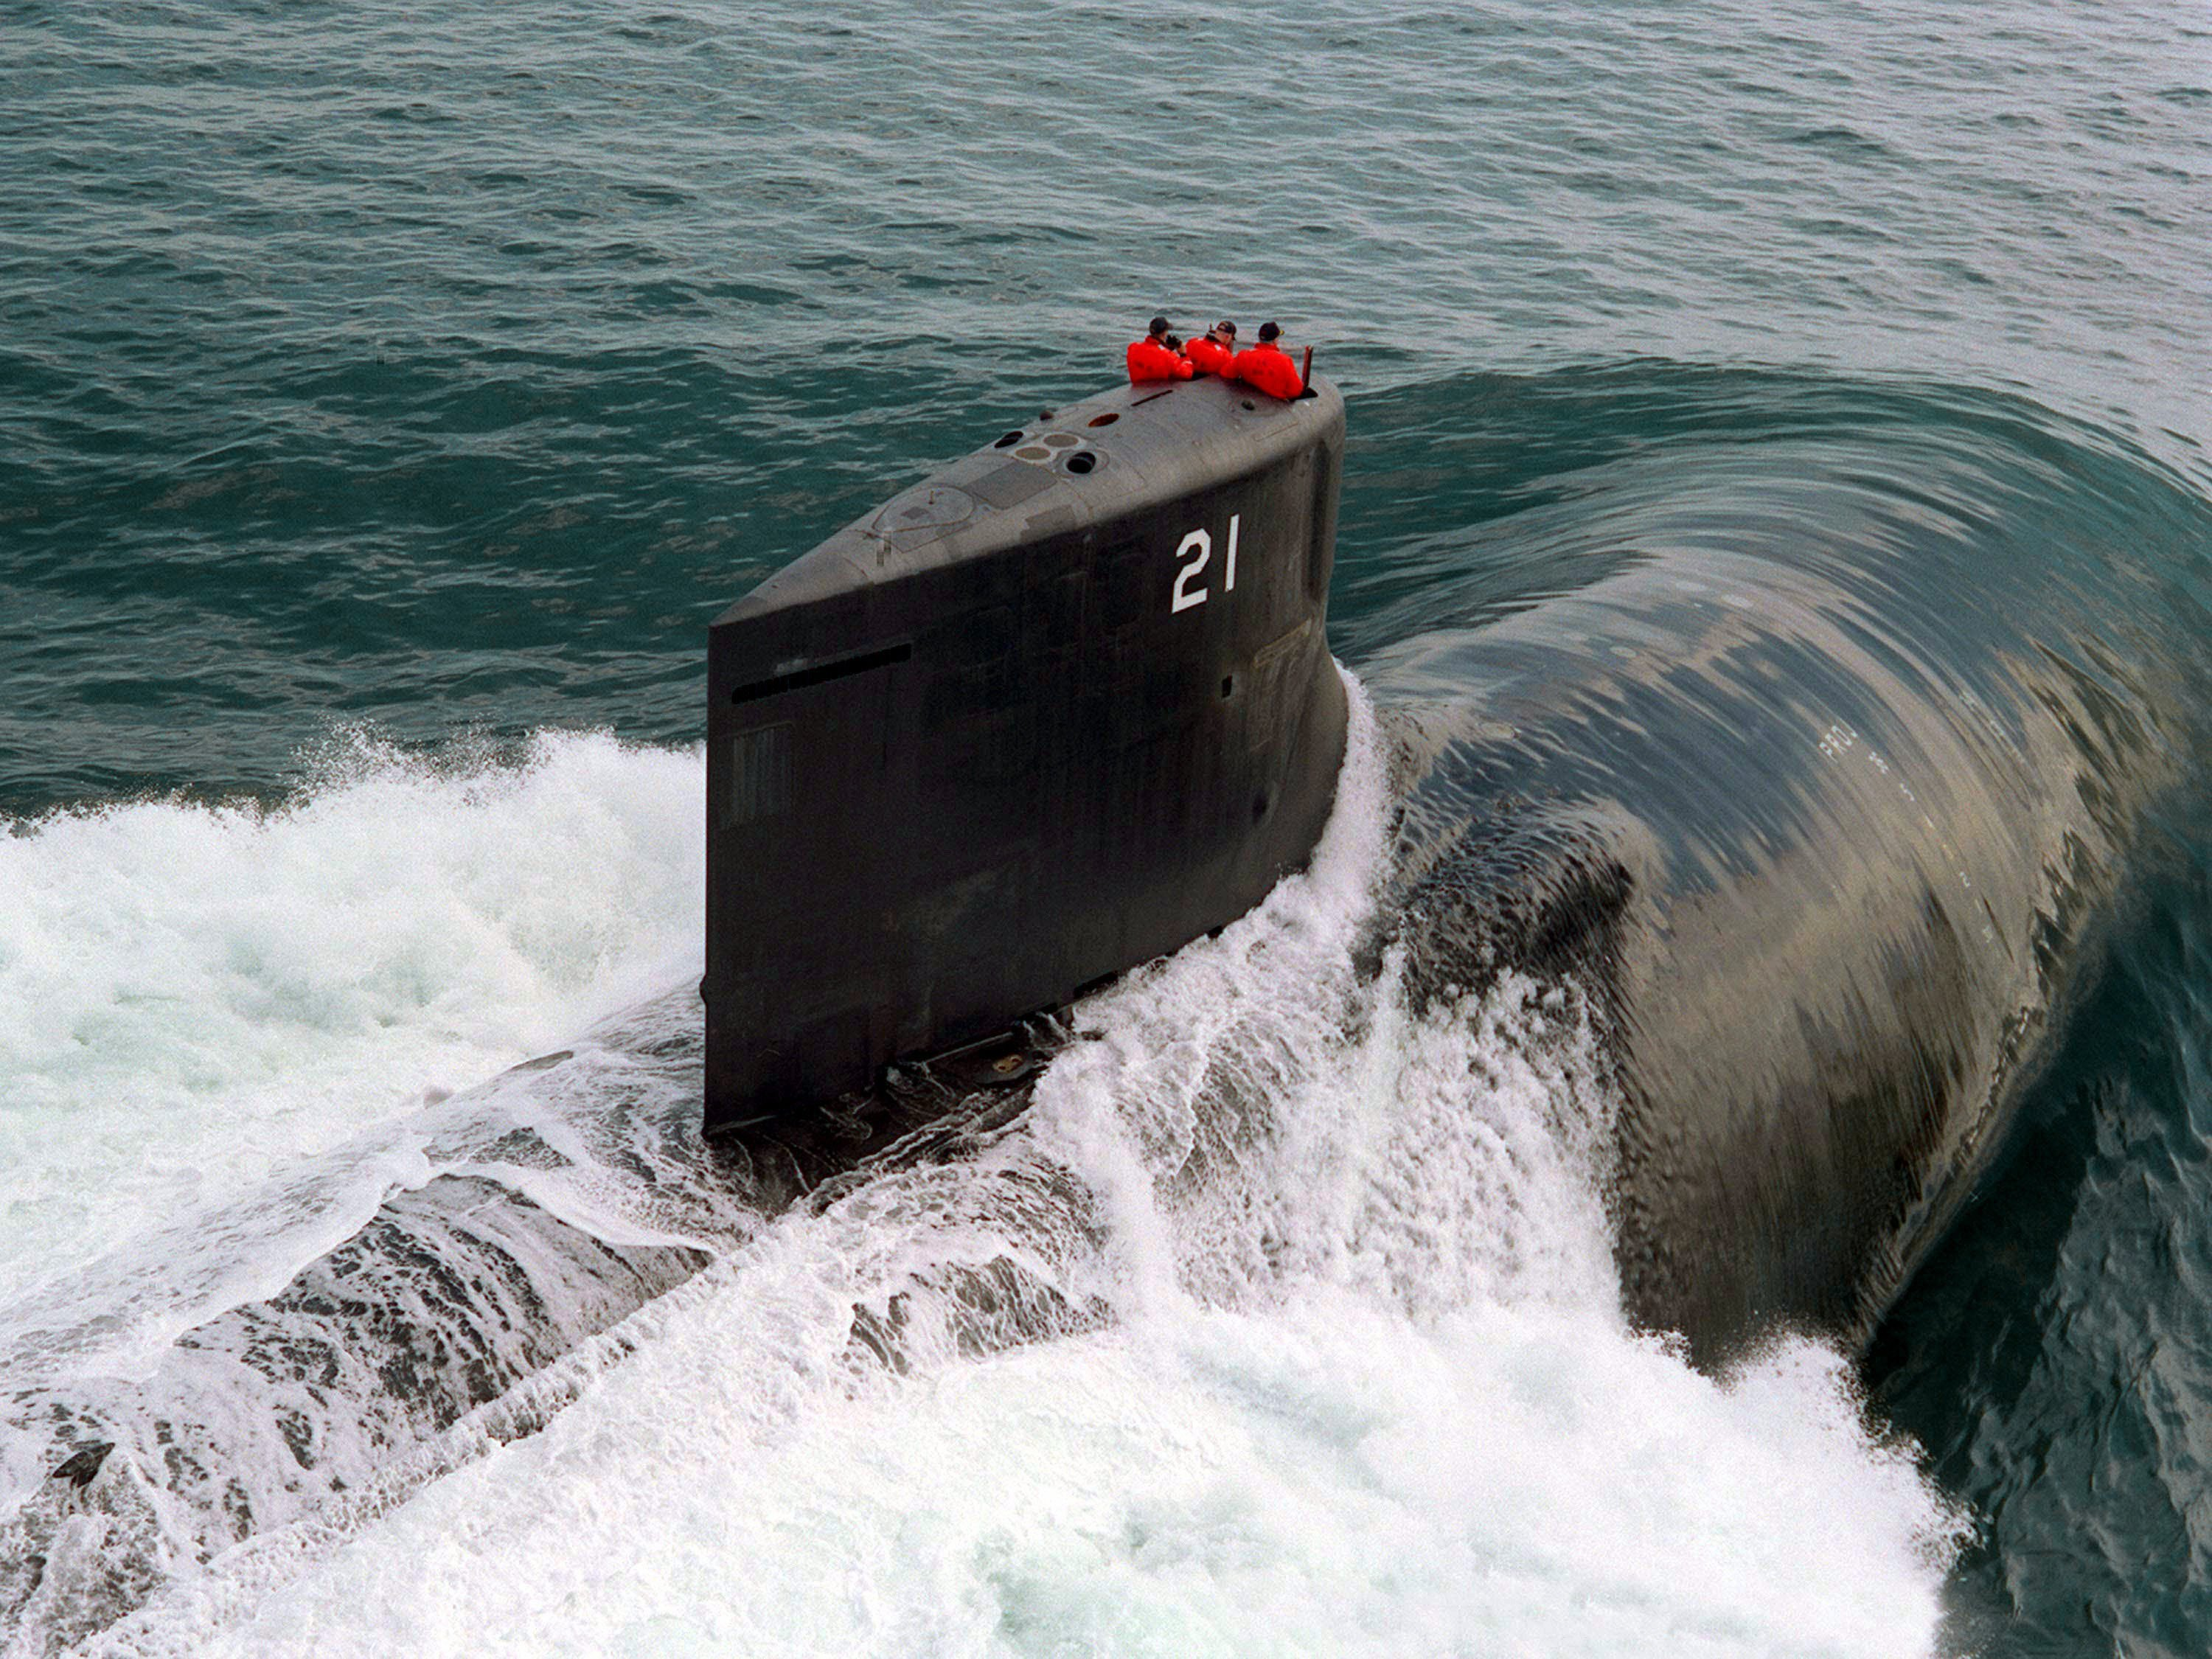 The Best Sub on the Planet: Why the U.S. Navy Only Built 3 Seawolf Submarines